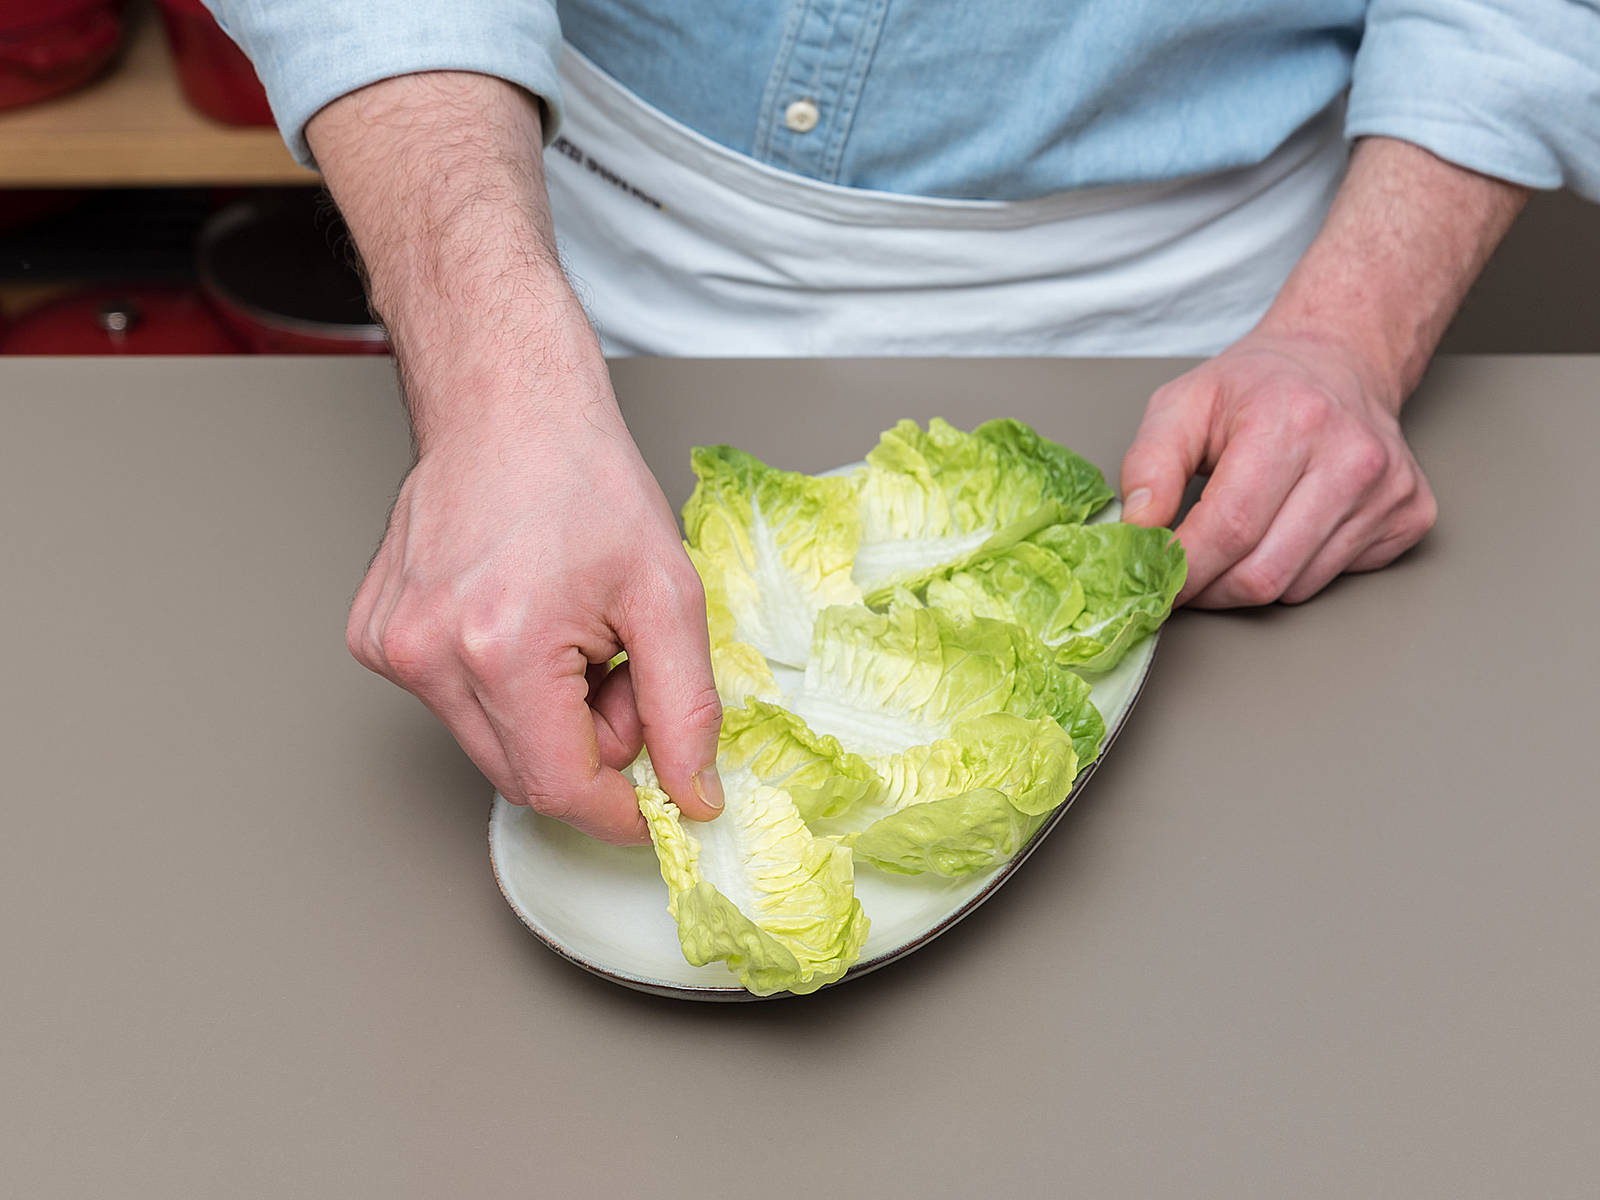 Pluck leaves from romaine hearts one at a time, then clean and dry. Transfer lettuce leaves onto a plate, opening facing upwards.